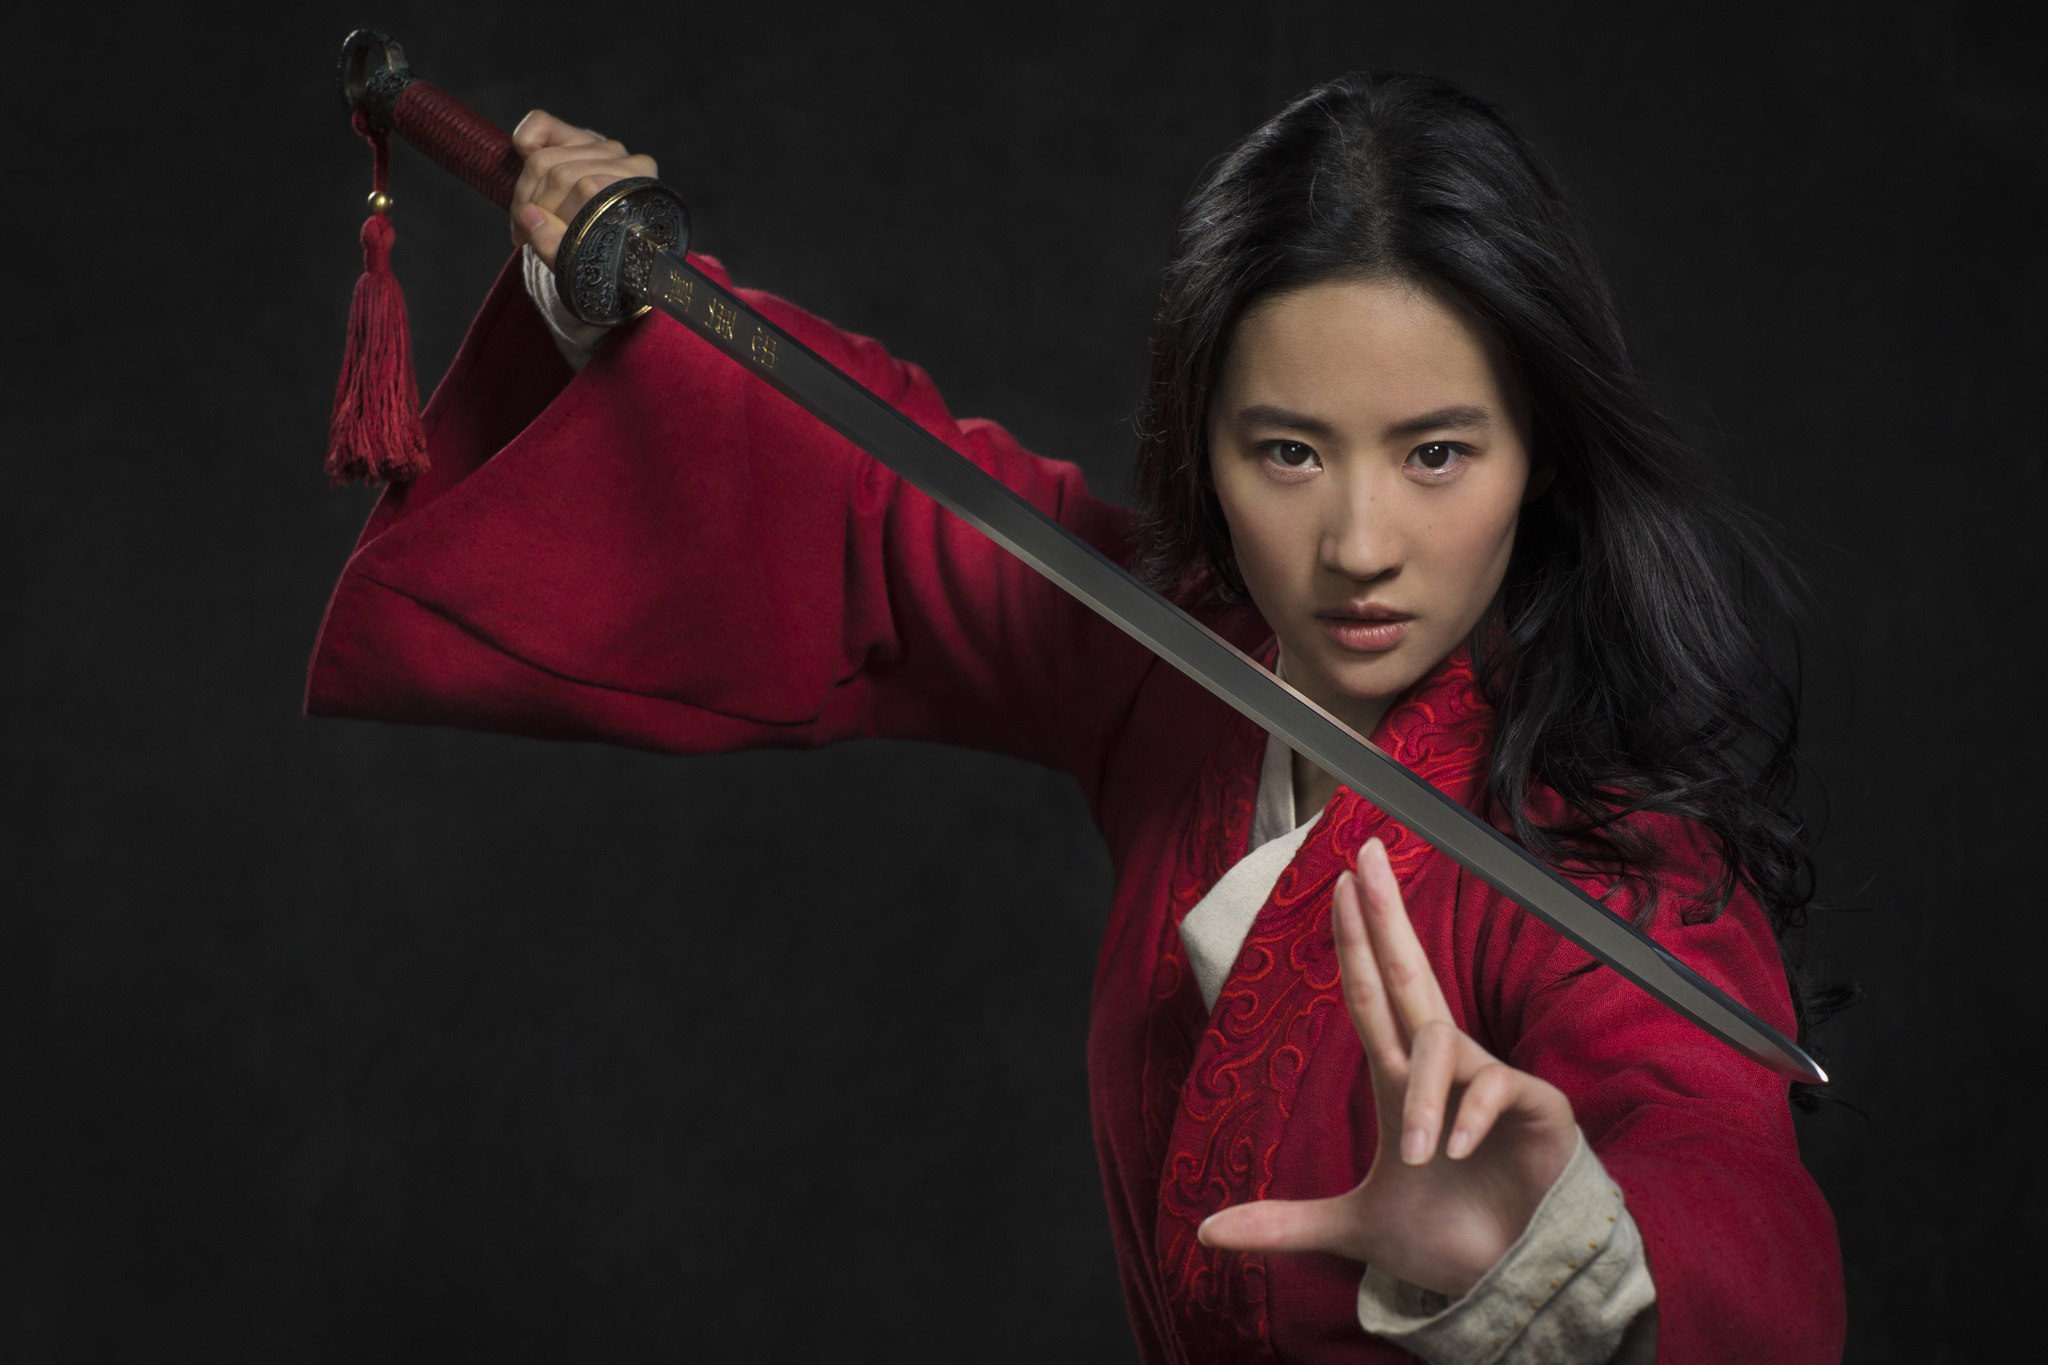 Crystal Liu stars as Mulan in the remake of the 1998 animated film of the same name.